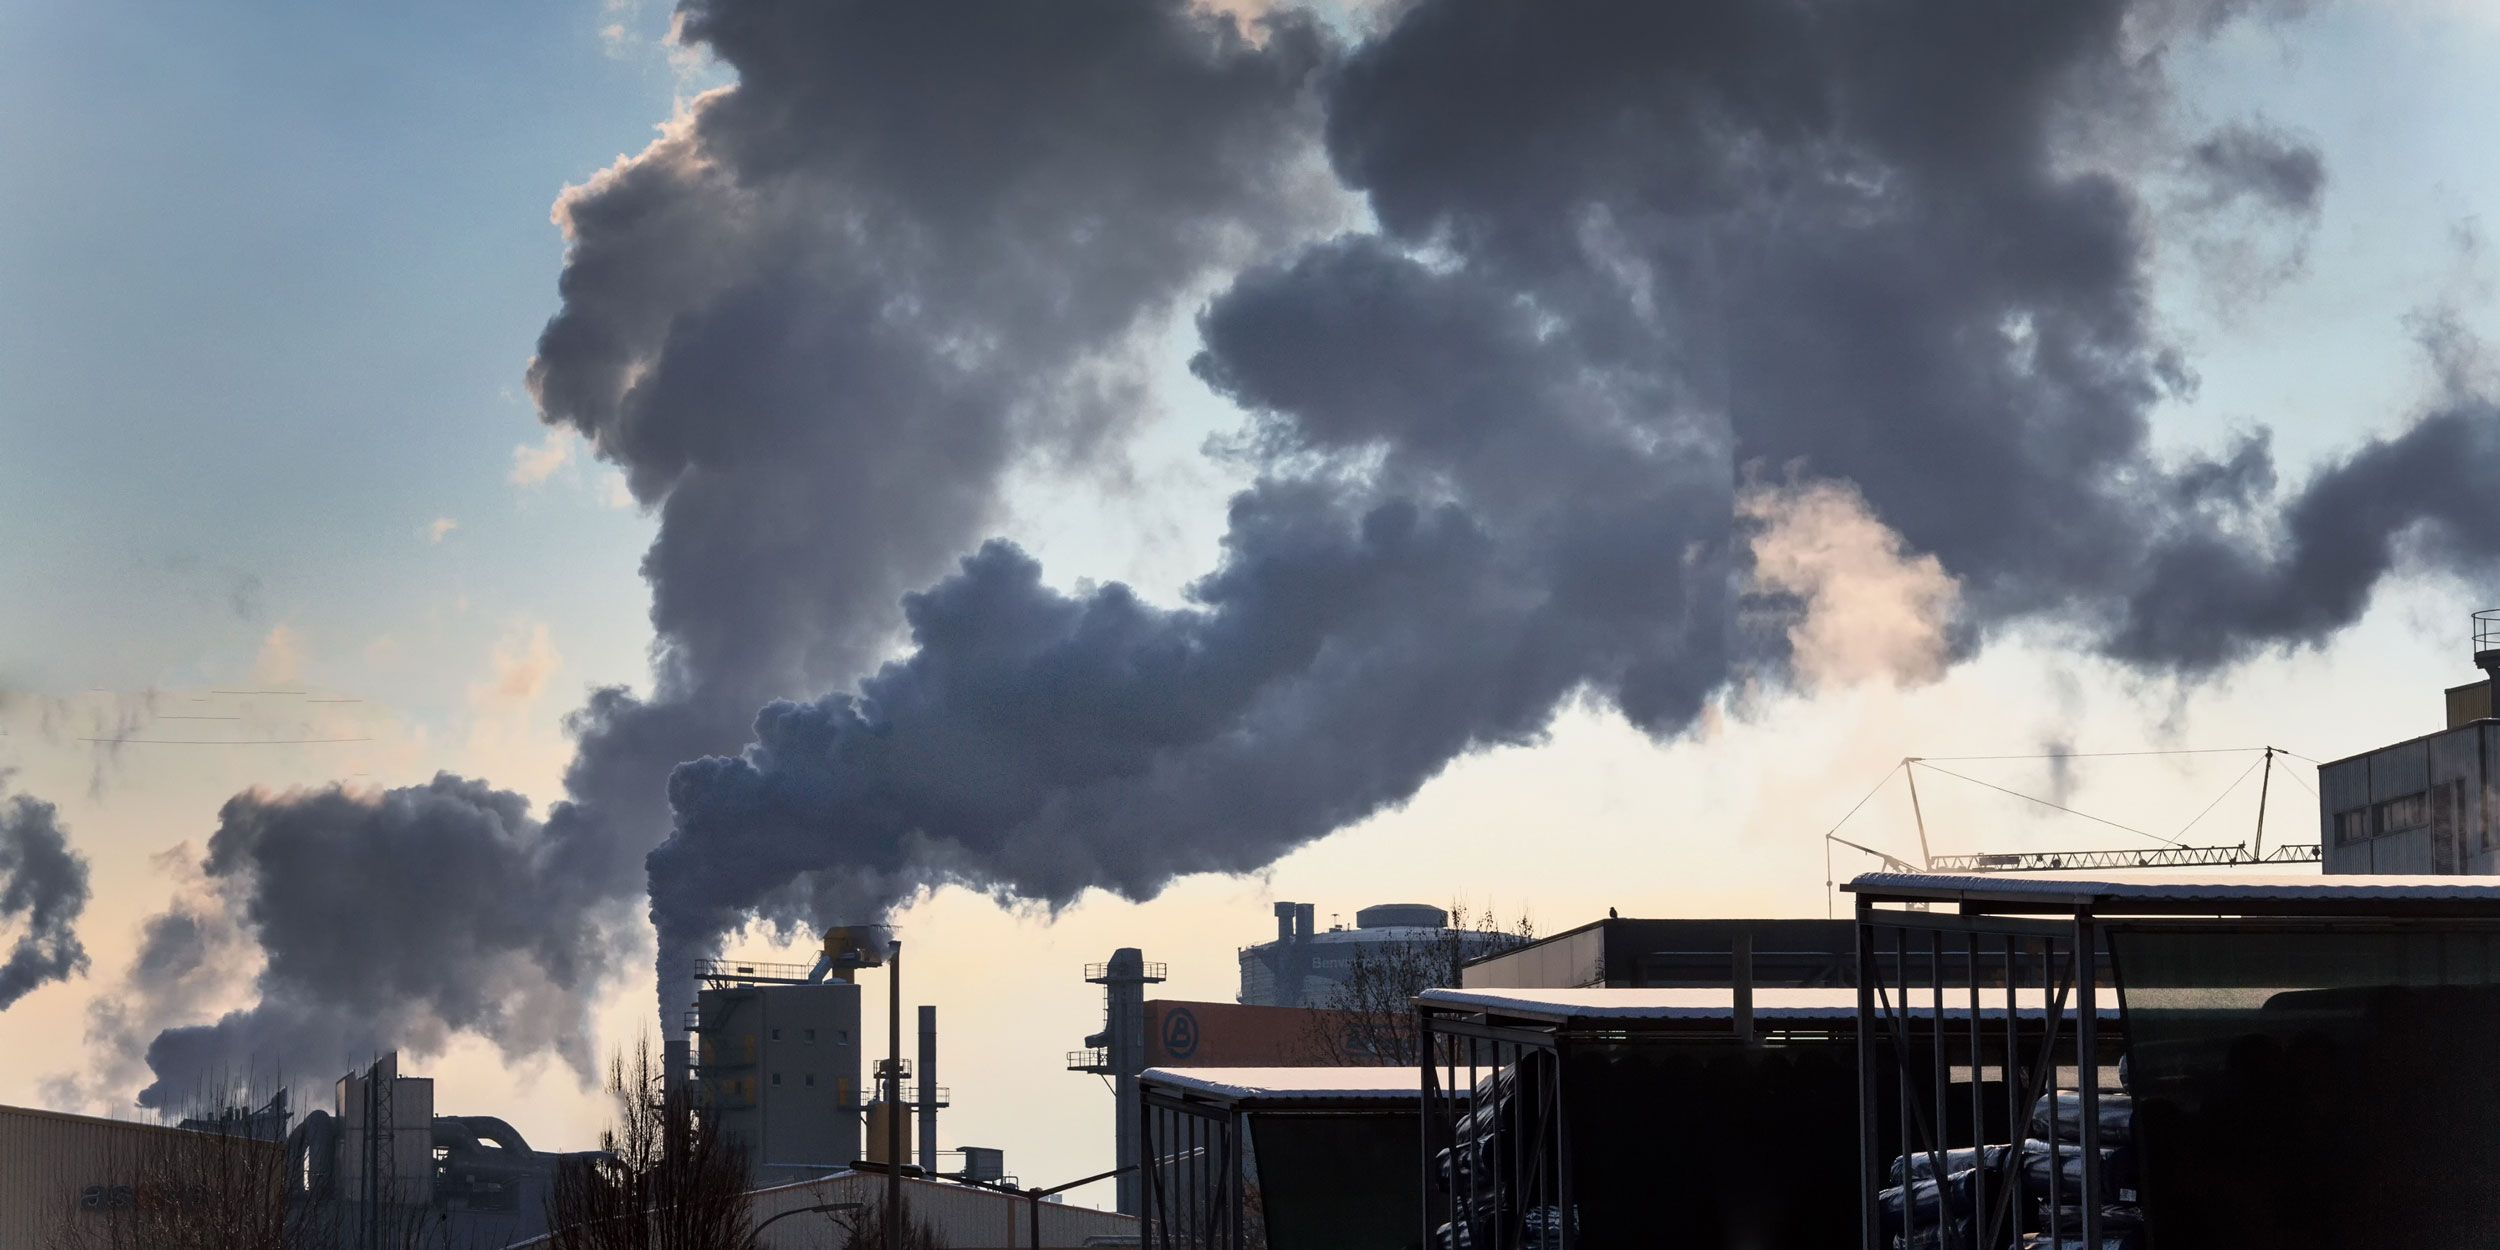 Scientists Discover Method to Turn CO2 Into Methane